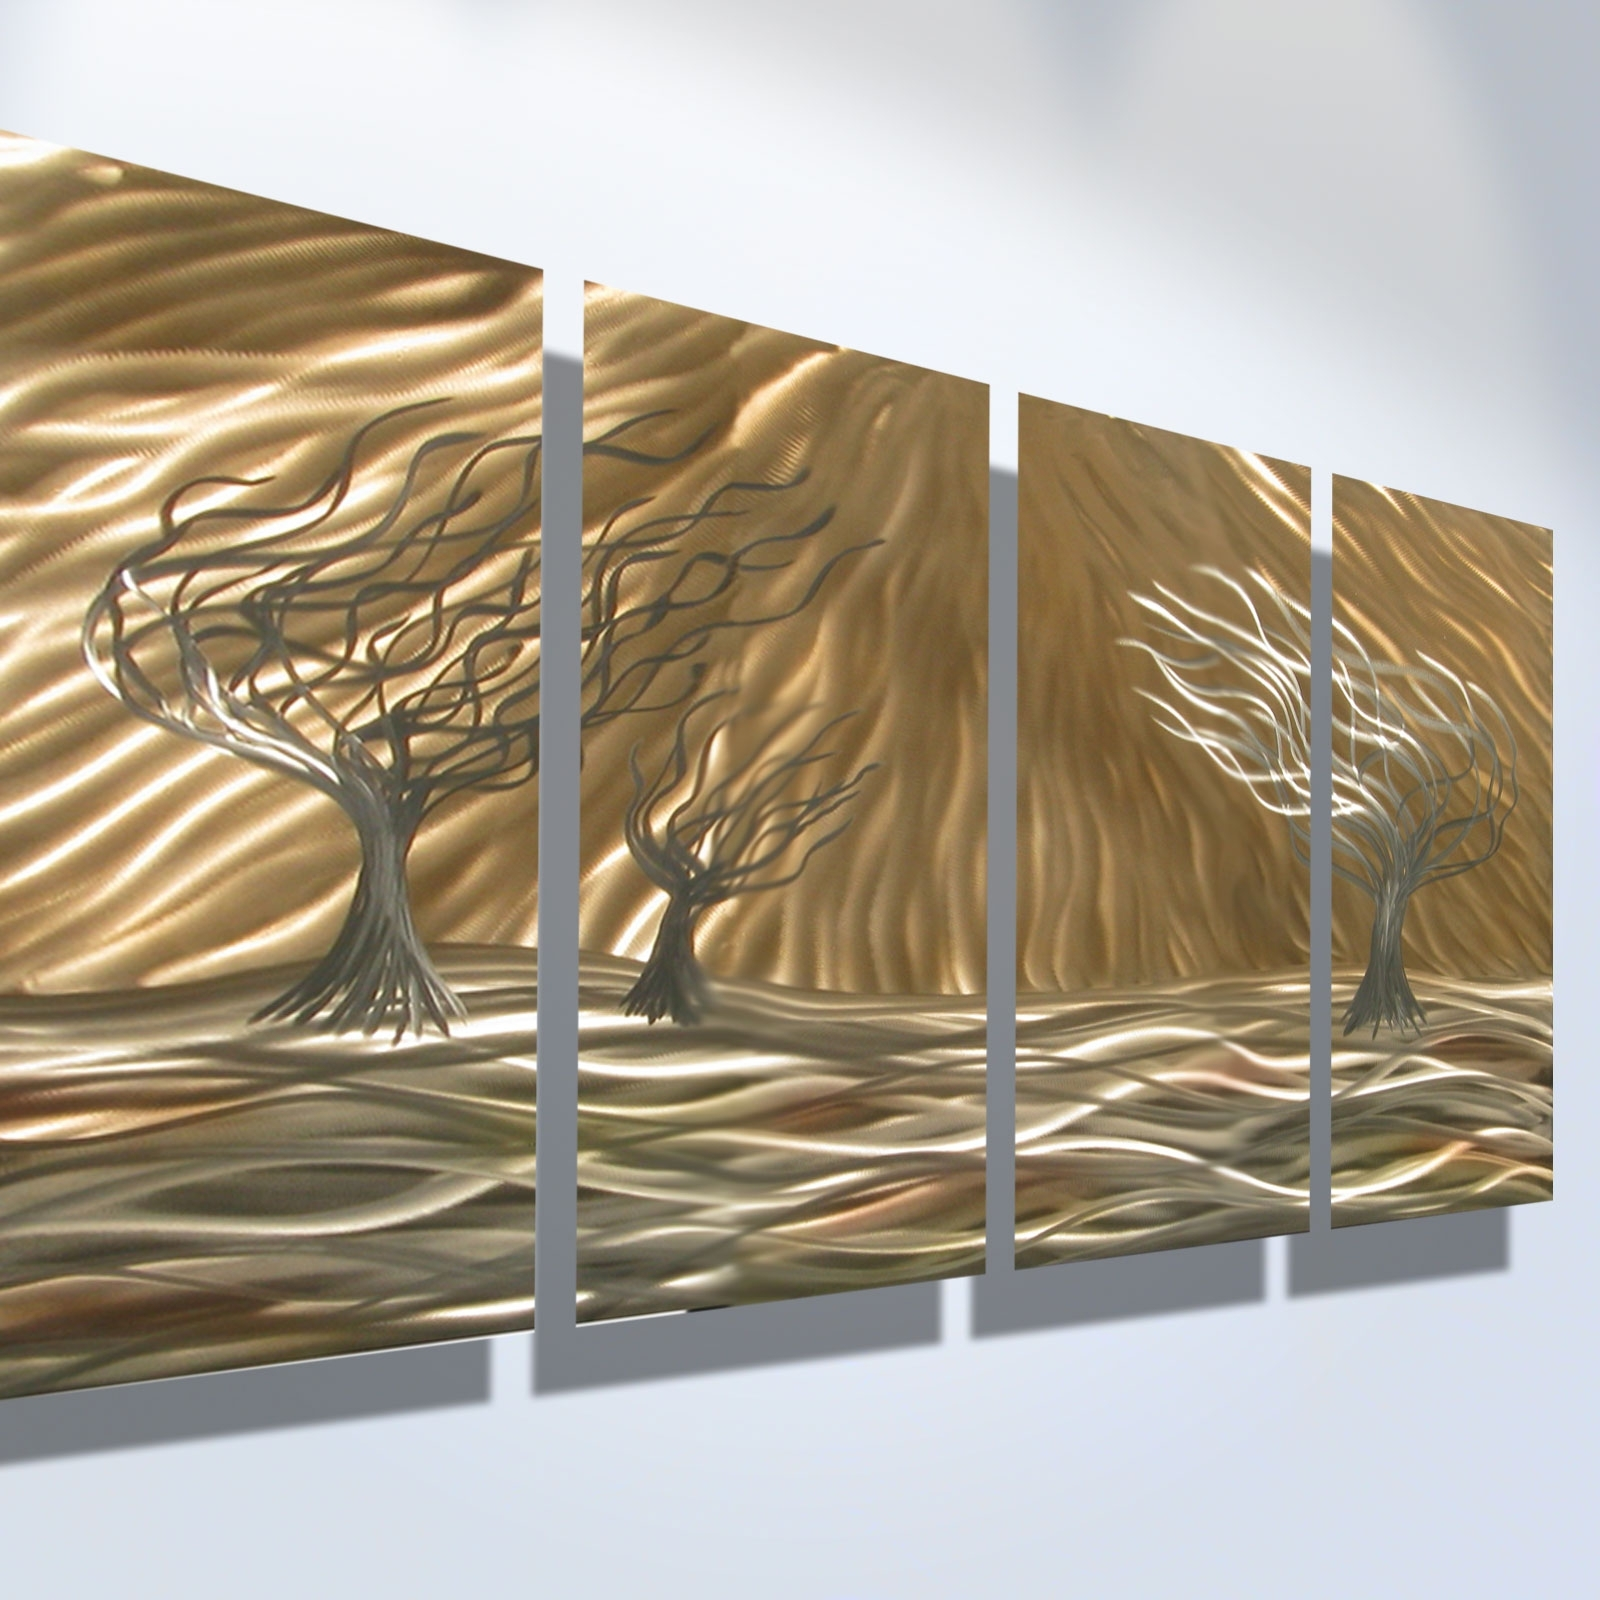 3 Trees 4 Panel – Abstract Metal Wall Art Contemporary Modern Throughout Most Recent Abstract Metal Wall Art (View 3 of 15)